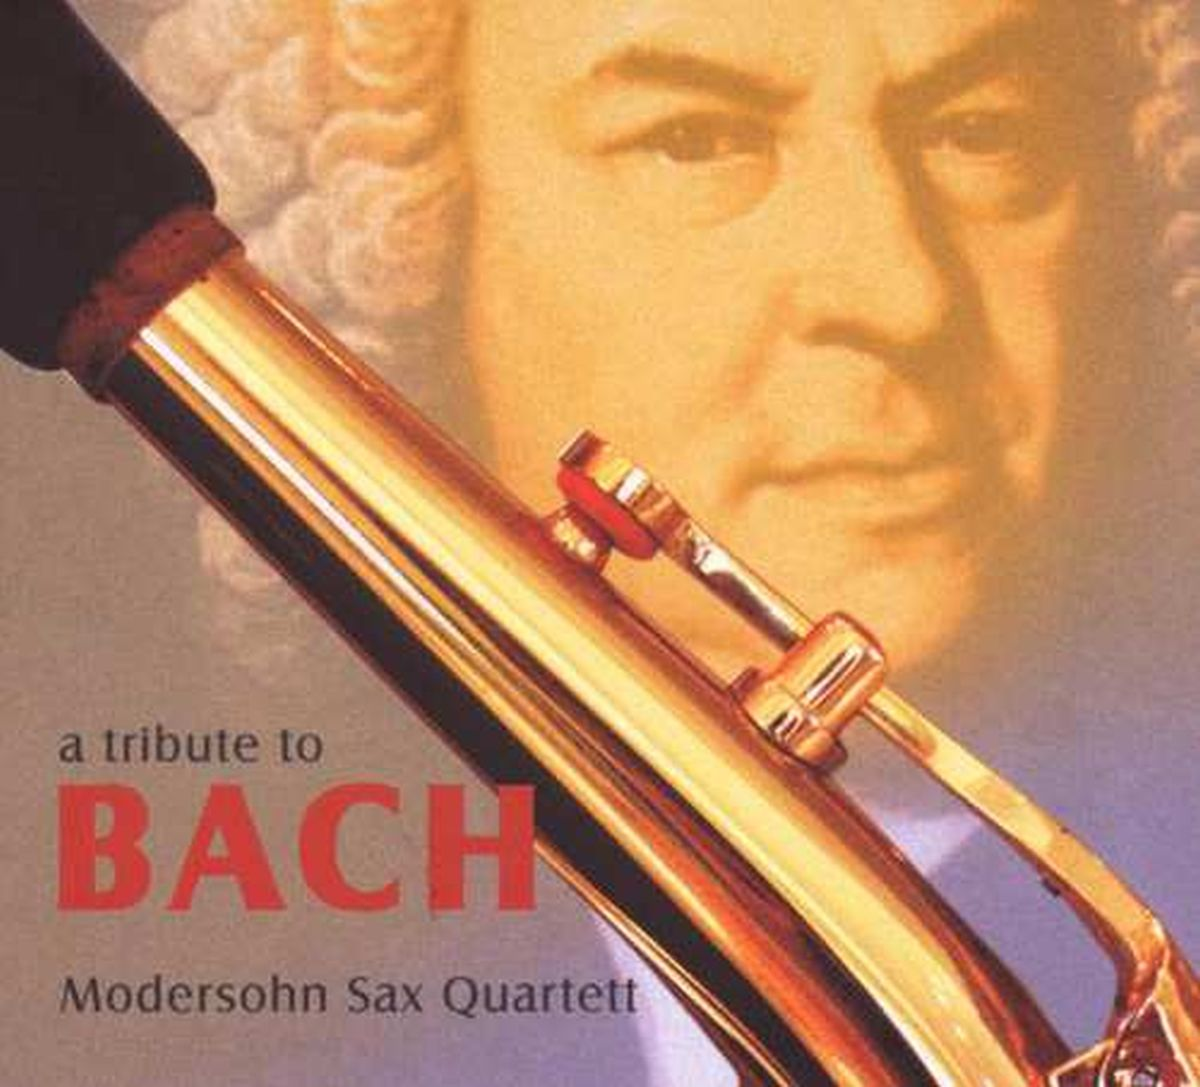 Amber Bach challenge records international - a tribute to bach